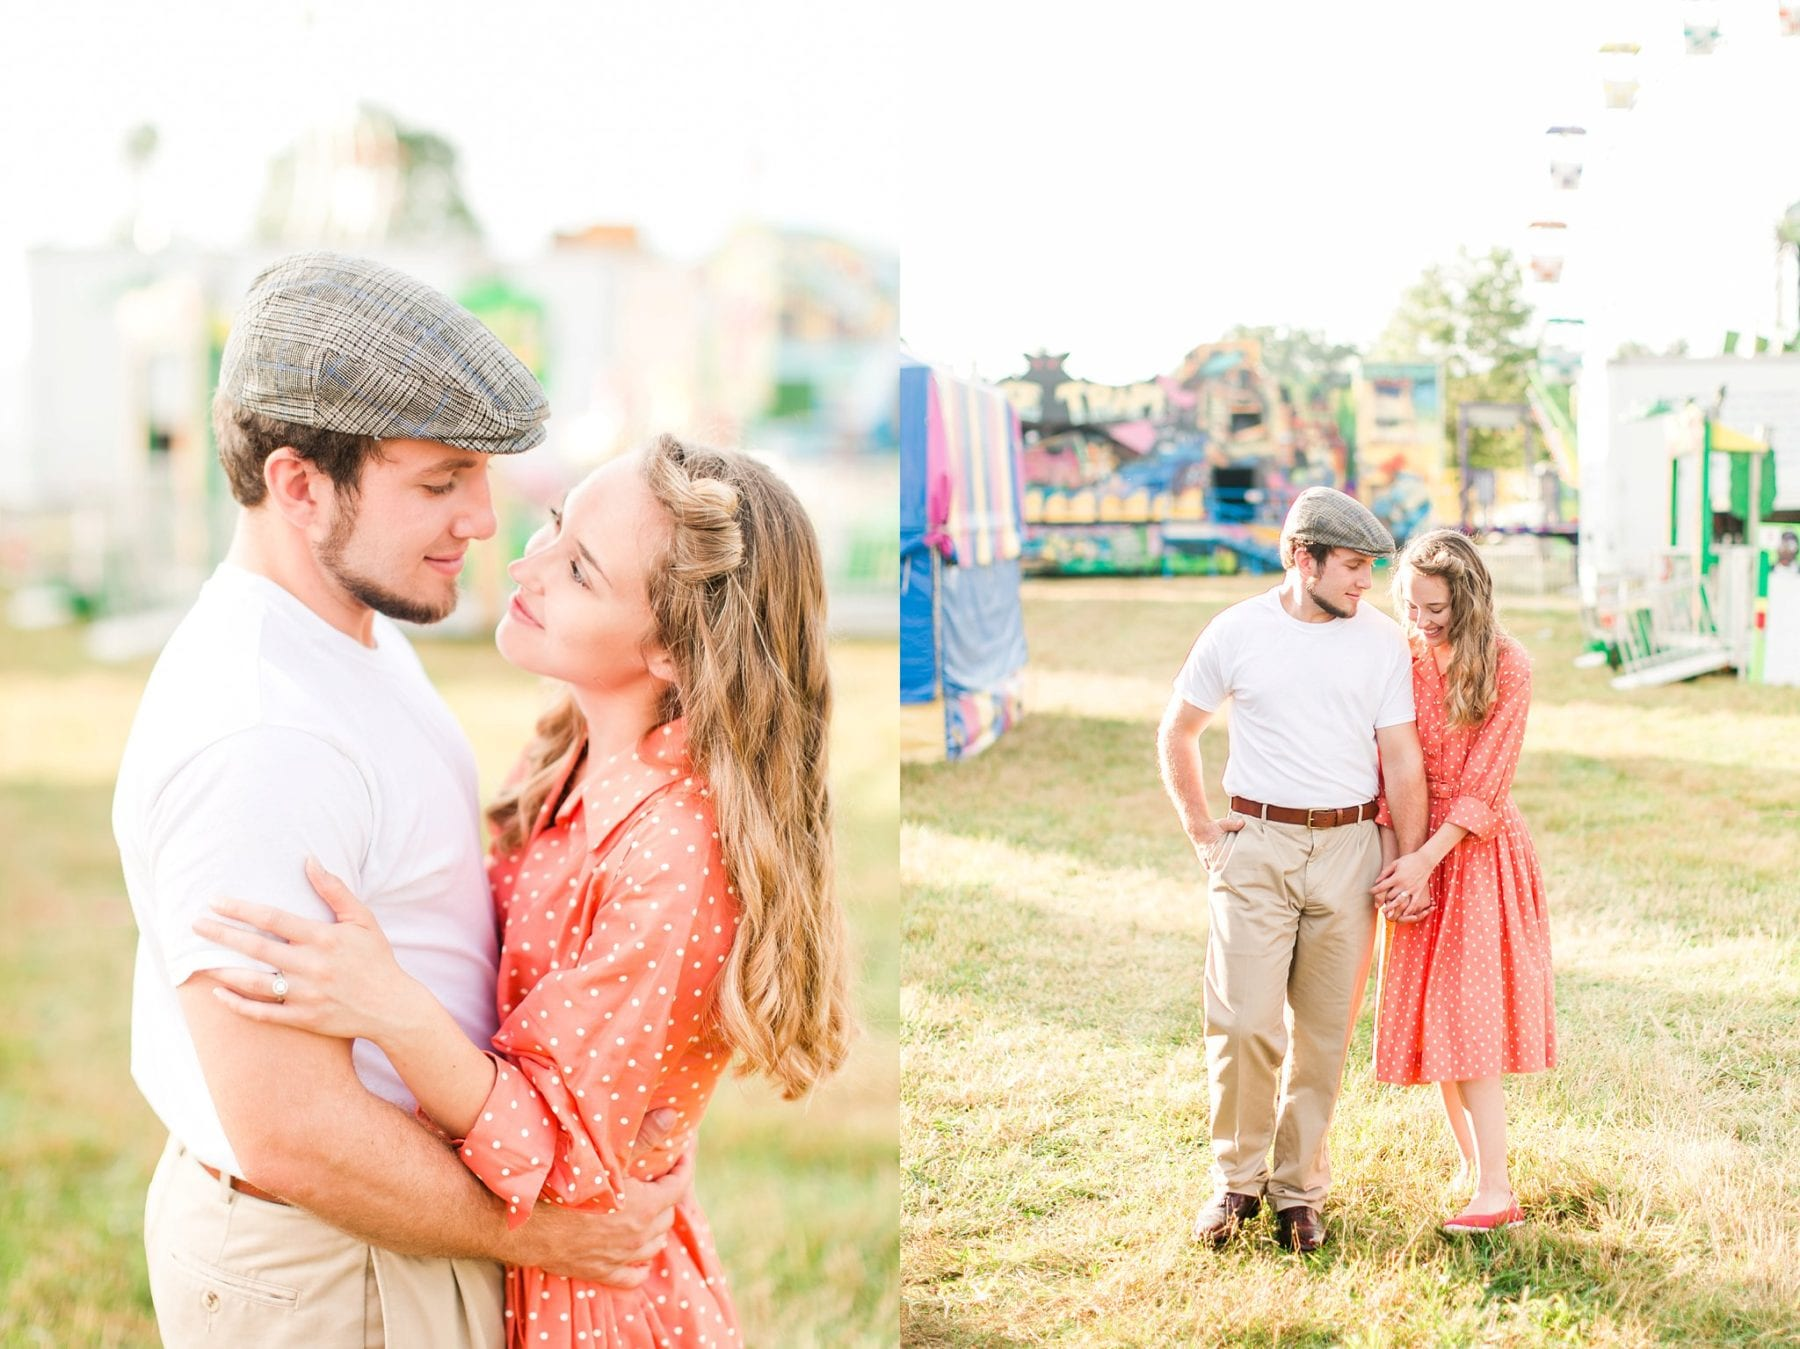 County Fair Engagement Photos Virginia Wedding Photographer Megan Kelsey Photography Samantha & Charles-160.JPG